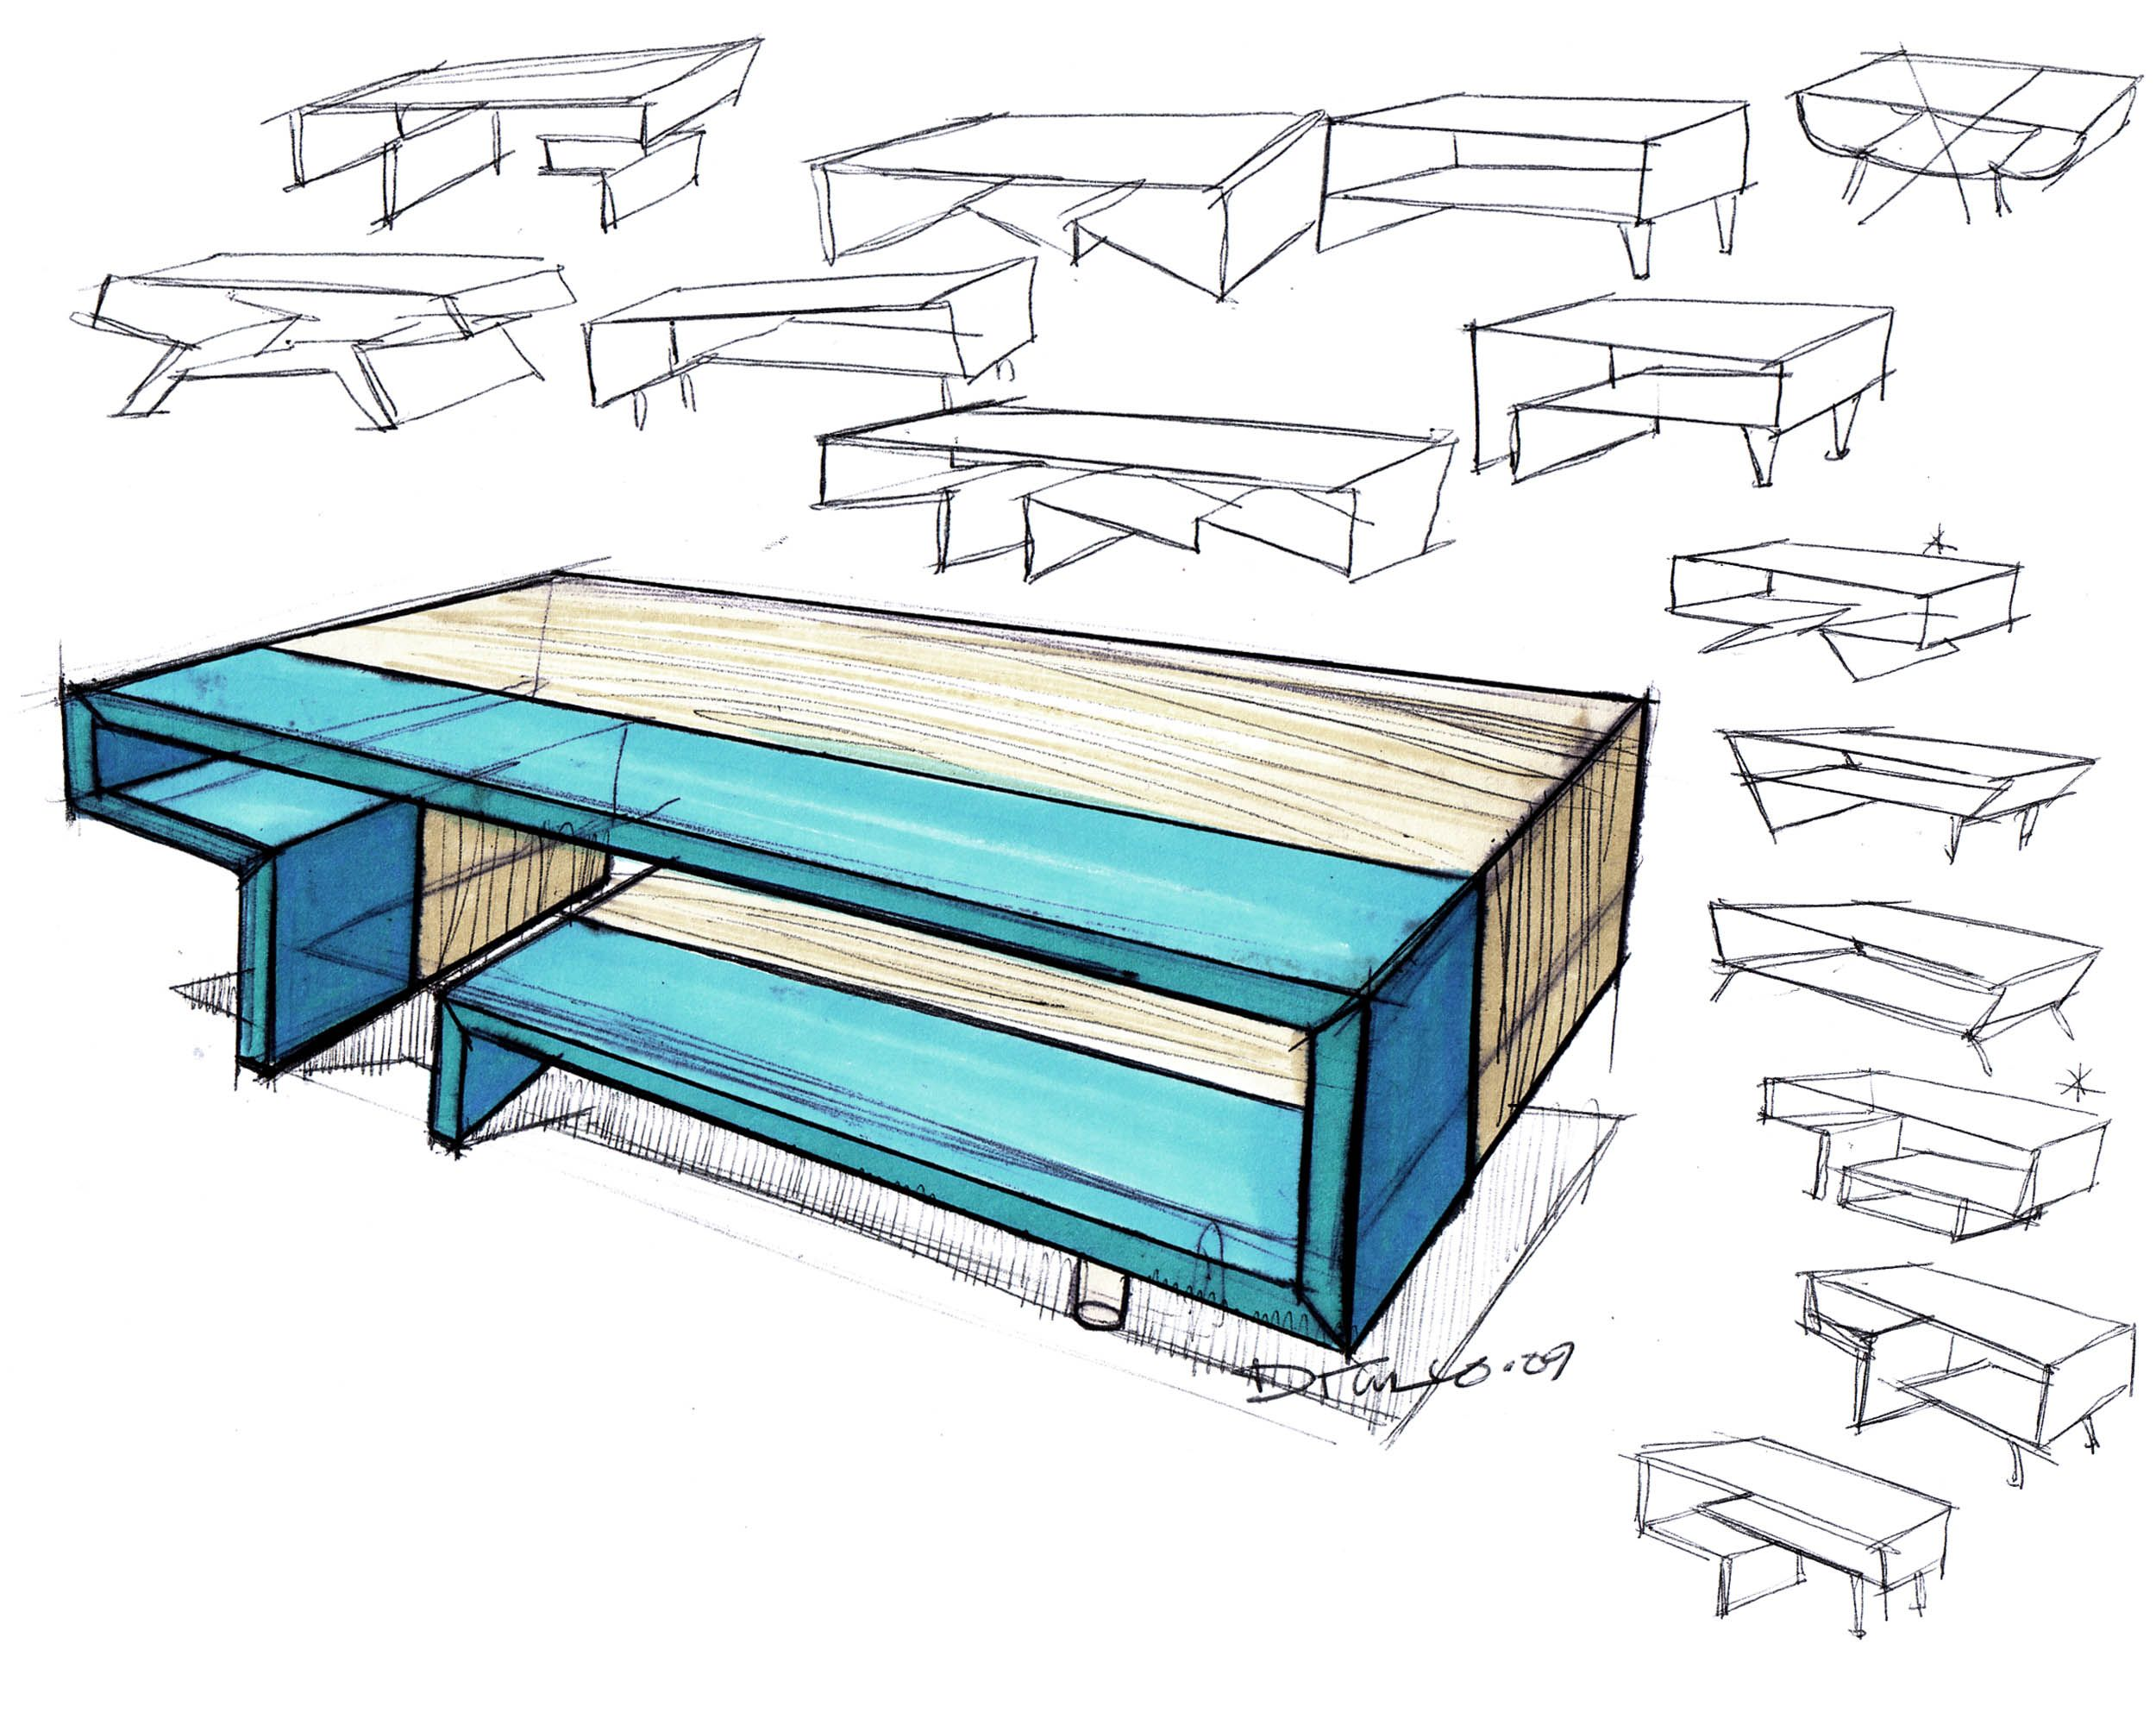 Industrial design sketches furniture - Furniture By Michael Ditullo At Coroflot Com Product Design